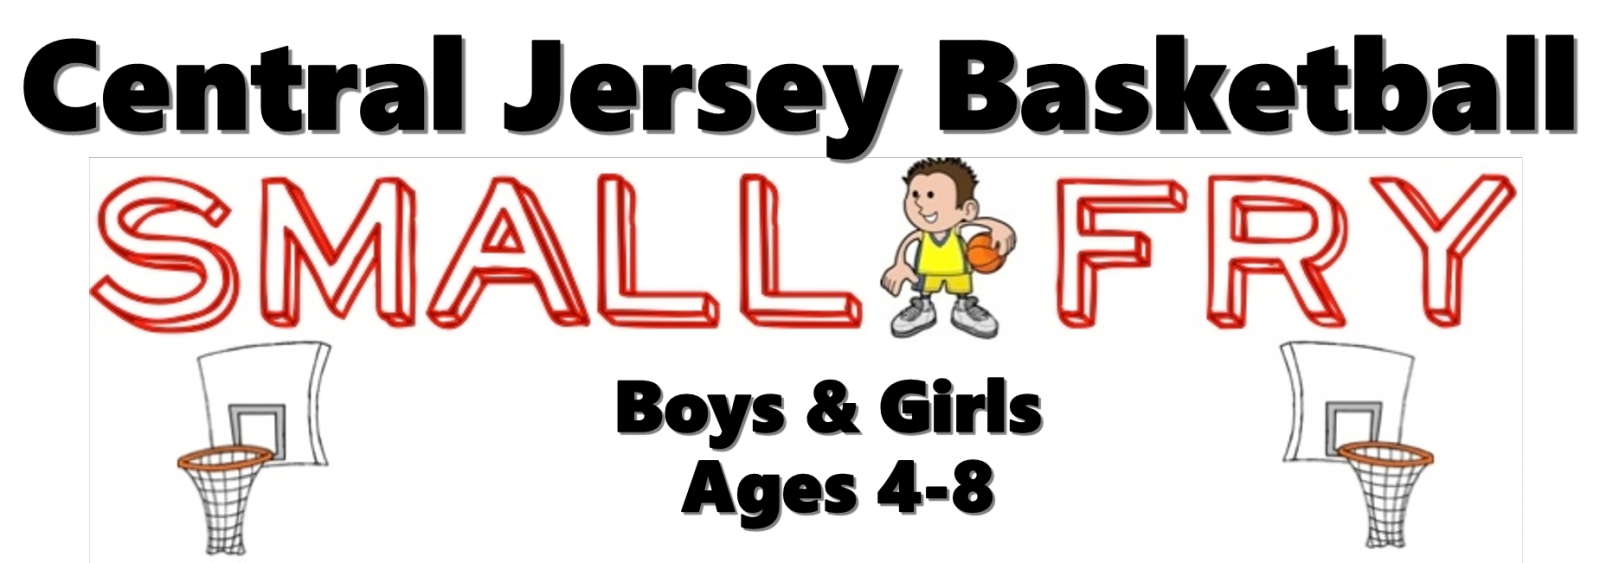 Basketball recess clipart picture royalty free library Central Jersey Basketball - Small Fry Basketball Academy picture royalty free library